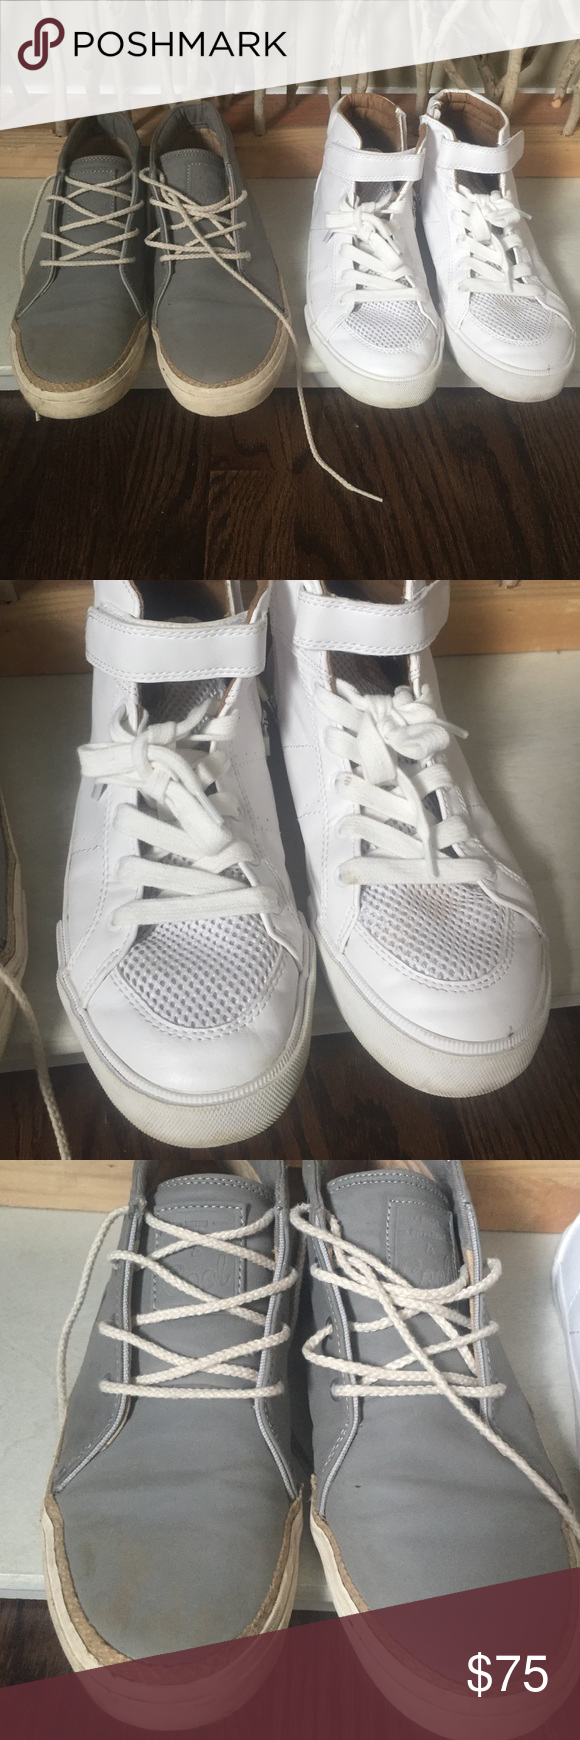 Host pick 2 pairs of zara big boy sneakers zara shoes shoes 2 pairs zara big boy sneakers both size check zara conversion chart for us sizeice is for both see all pics closely for condition please zara shoes nvjuhfo Images